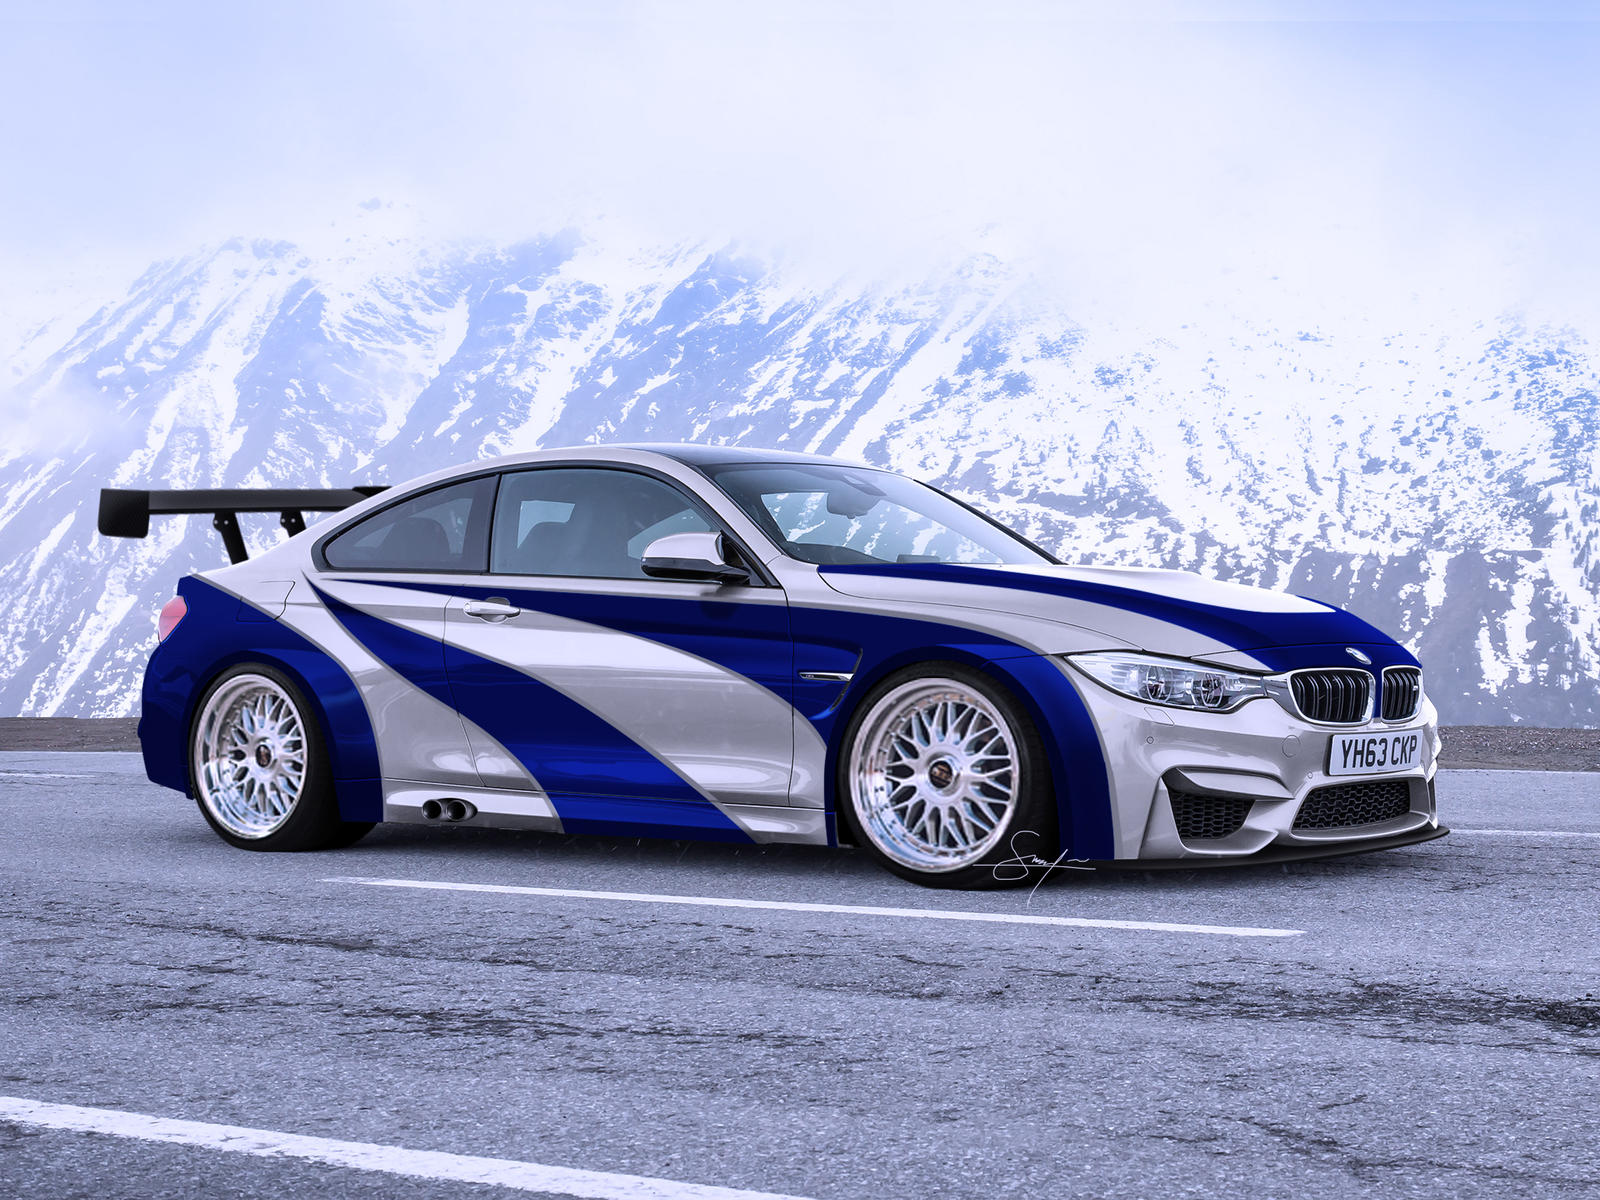 Bmw M4 Gtr NFS Most Wanted by CustDe on DeviantArt